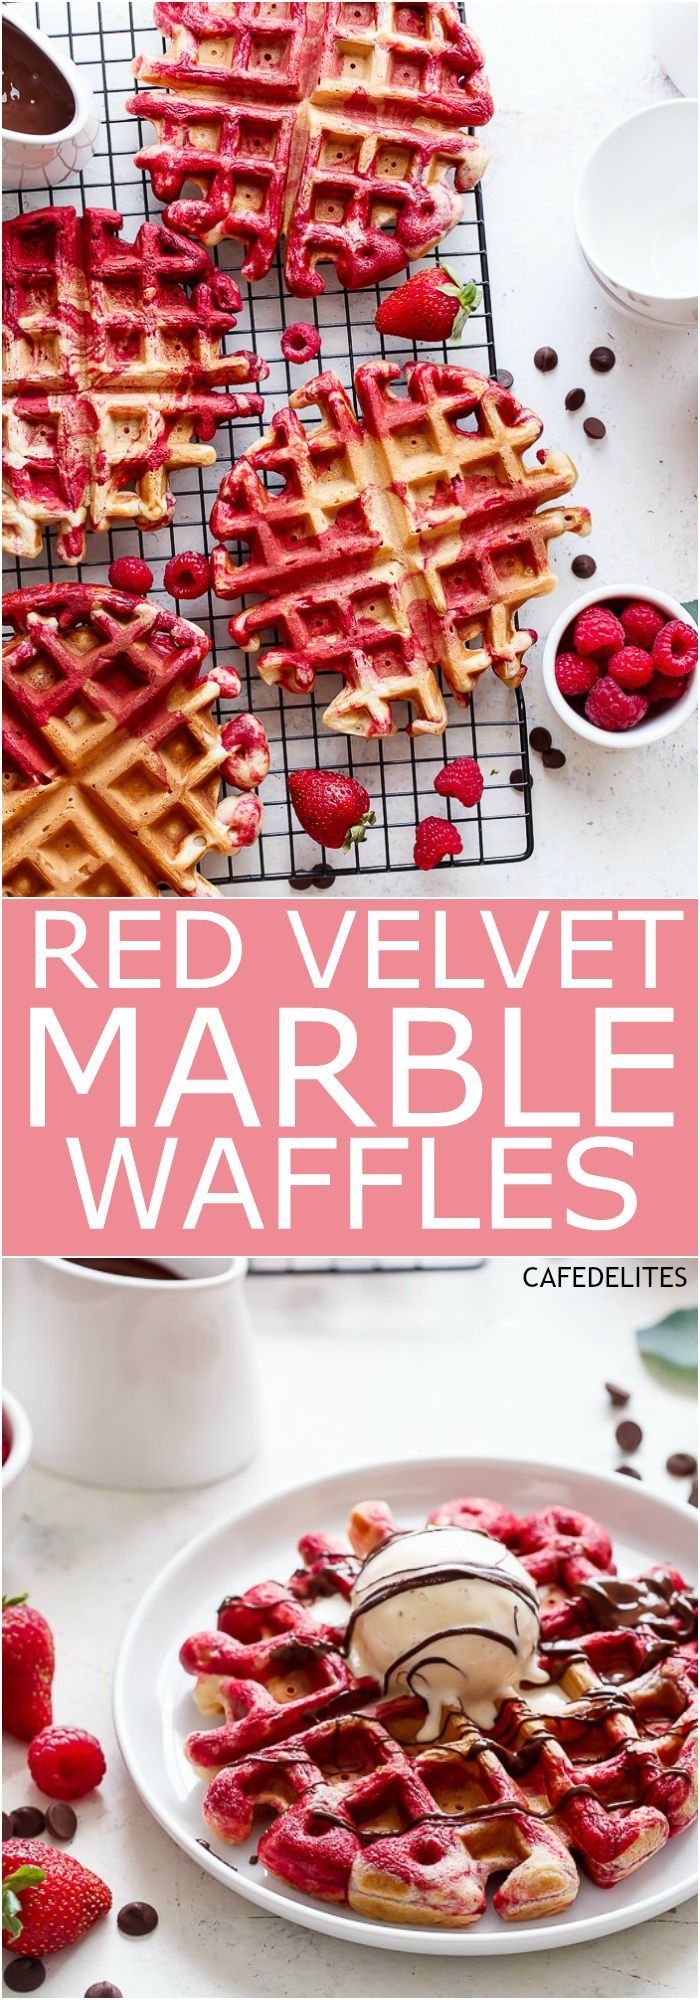 Red Velvet Marbled Waffles (or Valentine's Day Waffles) made healthier with Greek Yogurt are absolutely incredible! Drizzled in melted chocolate and top with ice cream for extra indulgence! | http://cafedelites.com